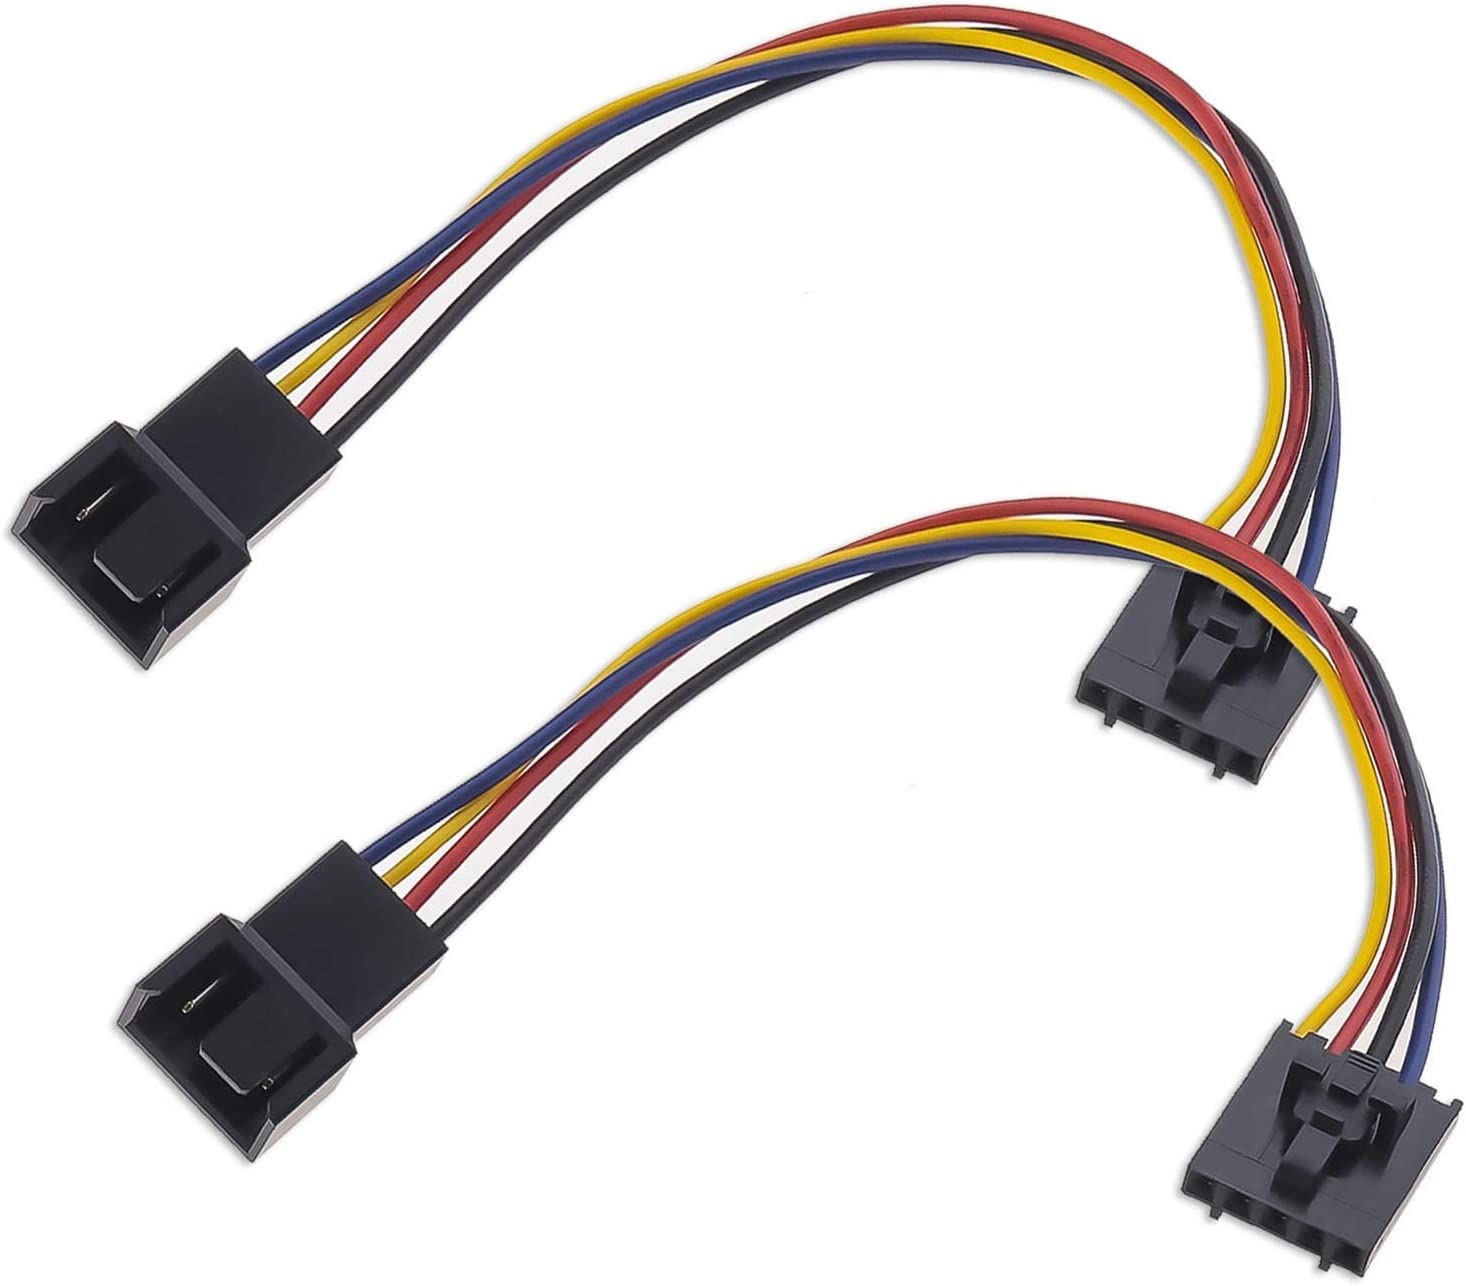 2 Pcs 5 Pin to 4 Pin Fan Adapter Converter Extension Cable Dedicated Fan Interface Conversion Line Compatible with Dell Computer PC